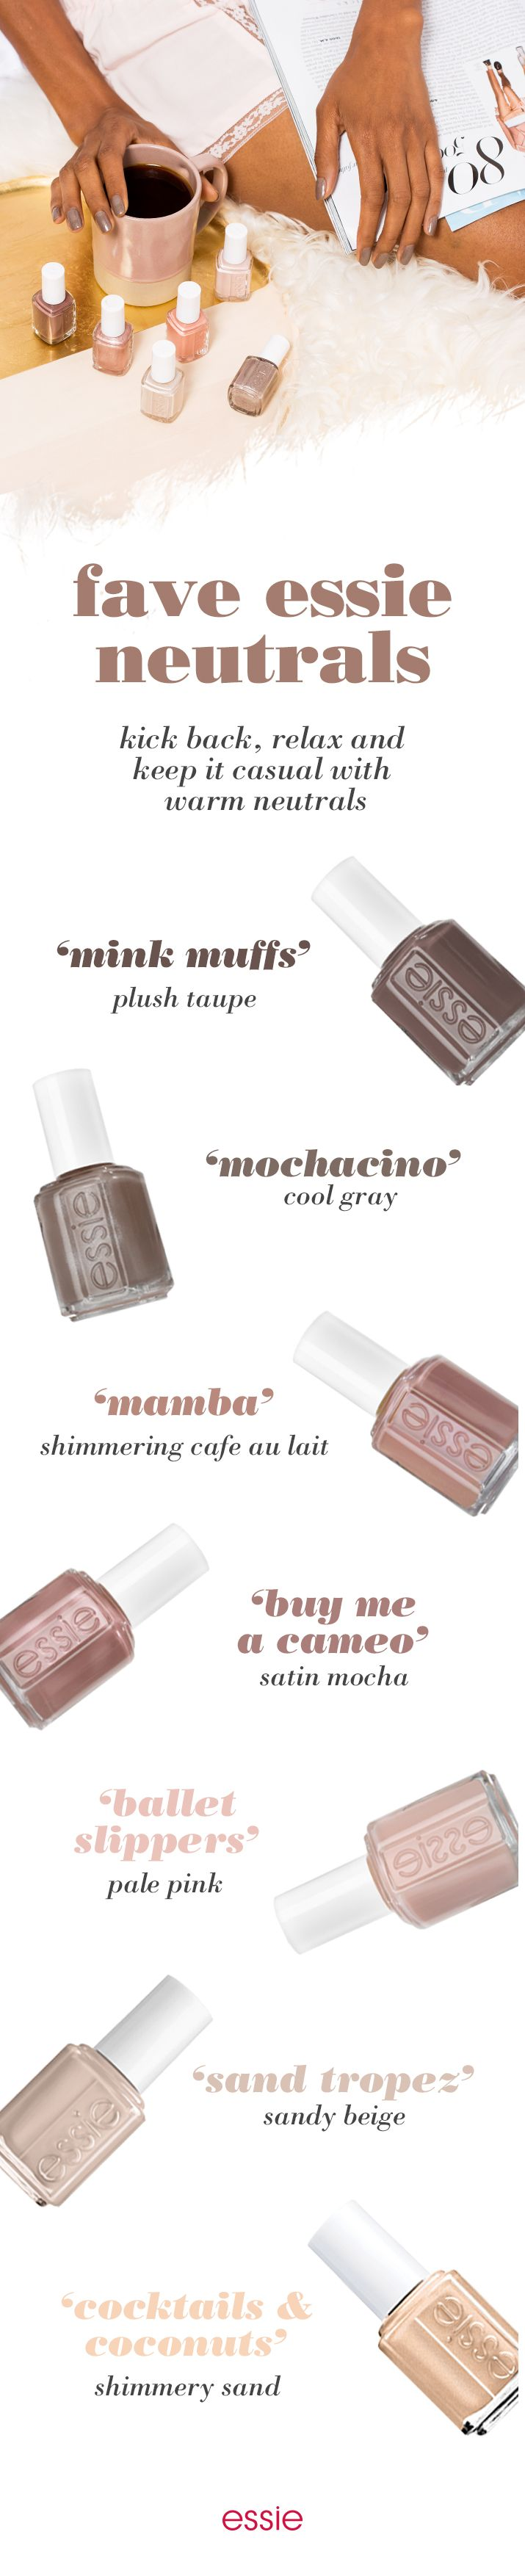 Make your way through fall days with these warm essie shades. Pair any outfit with a cool gray 'mochacino' nail polish or a smoky taupe 'mink muffs'. Give your look and your nails a little edge with cafe au lait 'mamba', or add some pop with satin mocha 'buy me a cameo'. If you want to keep it looking sweet, brush on a pale pink 'ballet slippers' or a sandy beige 'sand tropez'. But if you want to add some fun a shimmery sand 'cocktails & coconuts' will do the trick.